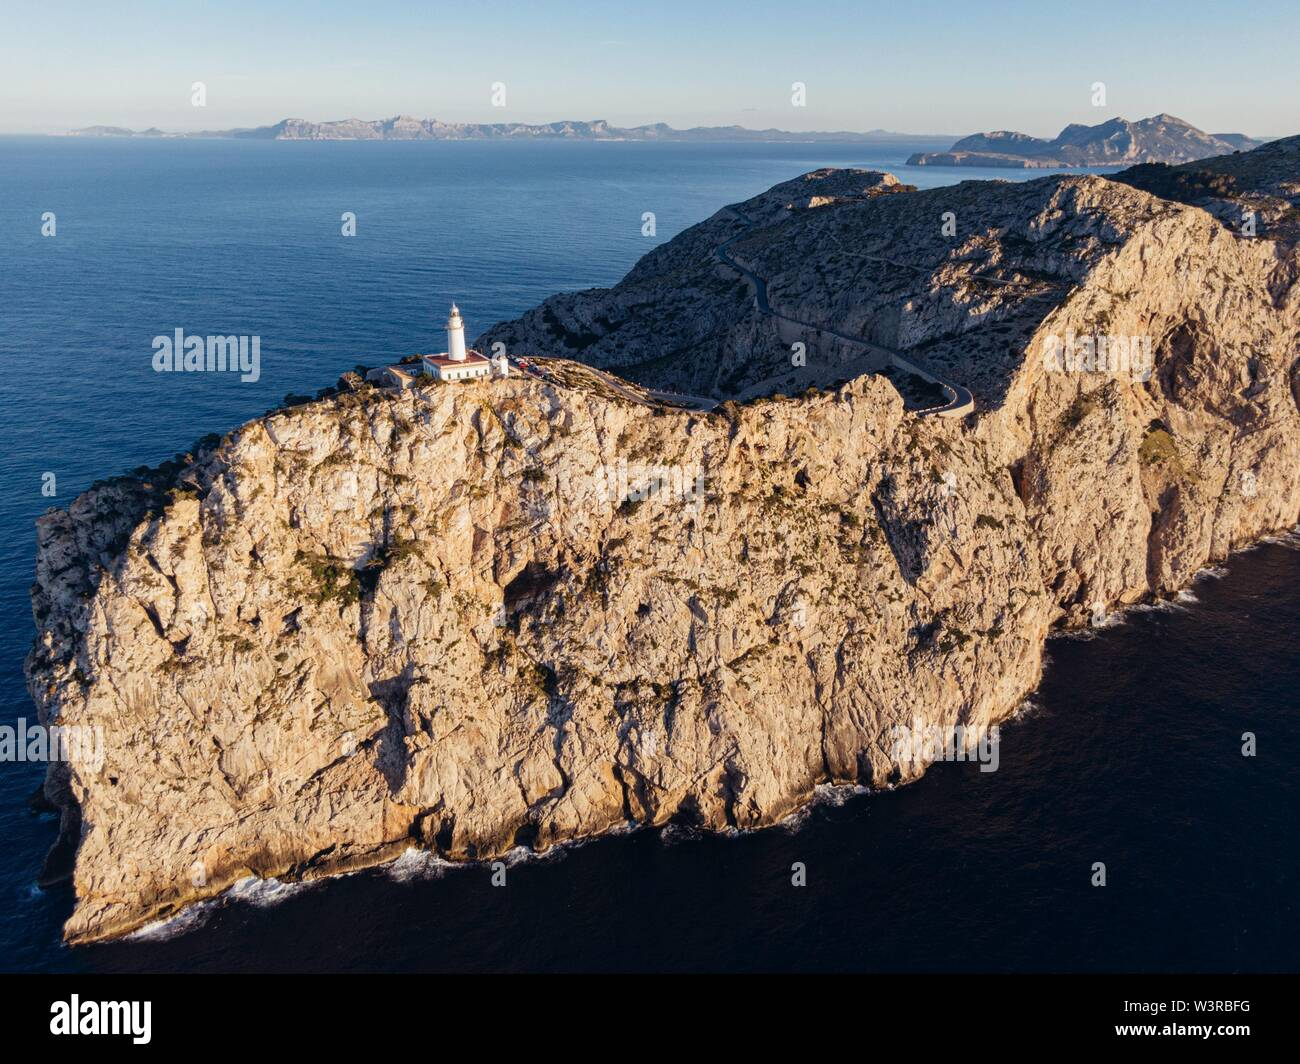 An aerial distant shot of a high rocky cliff with a white tower built on top in the middle of the ocean - Stock Image